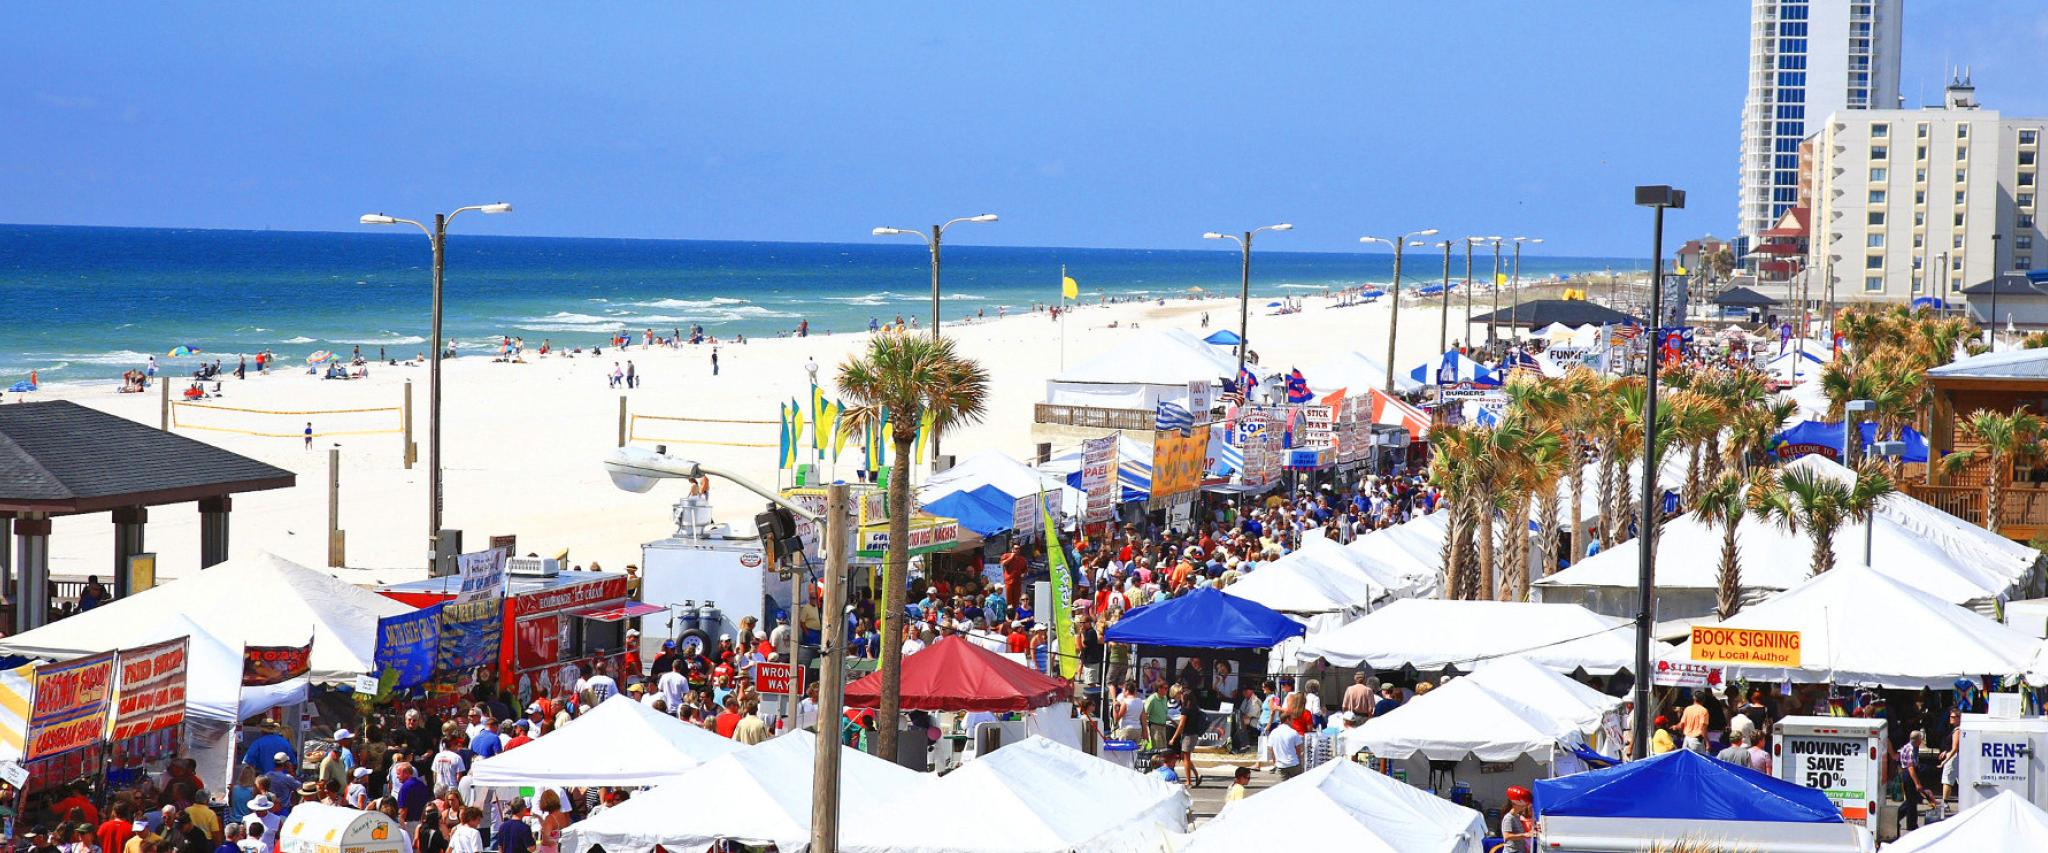 National Shrimp Festival in Gulf Shores, AL